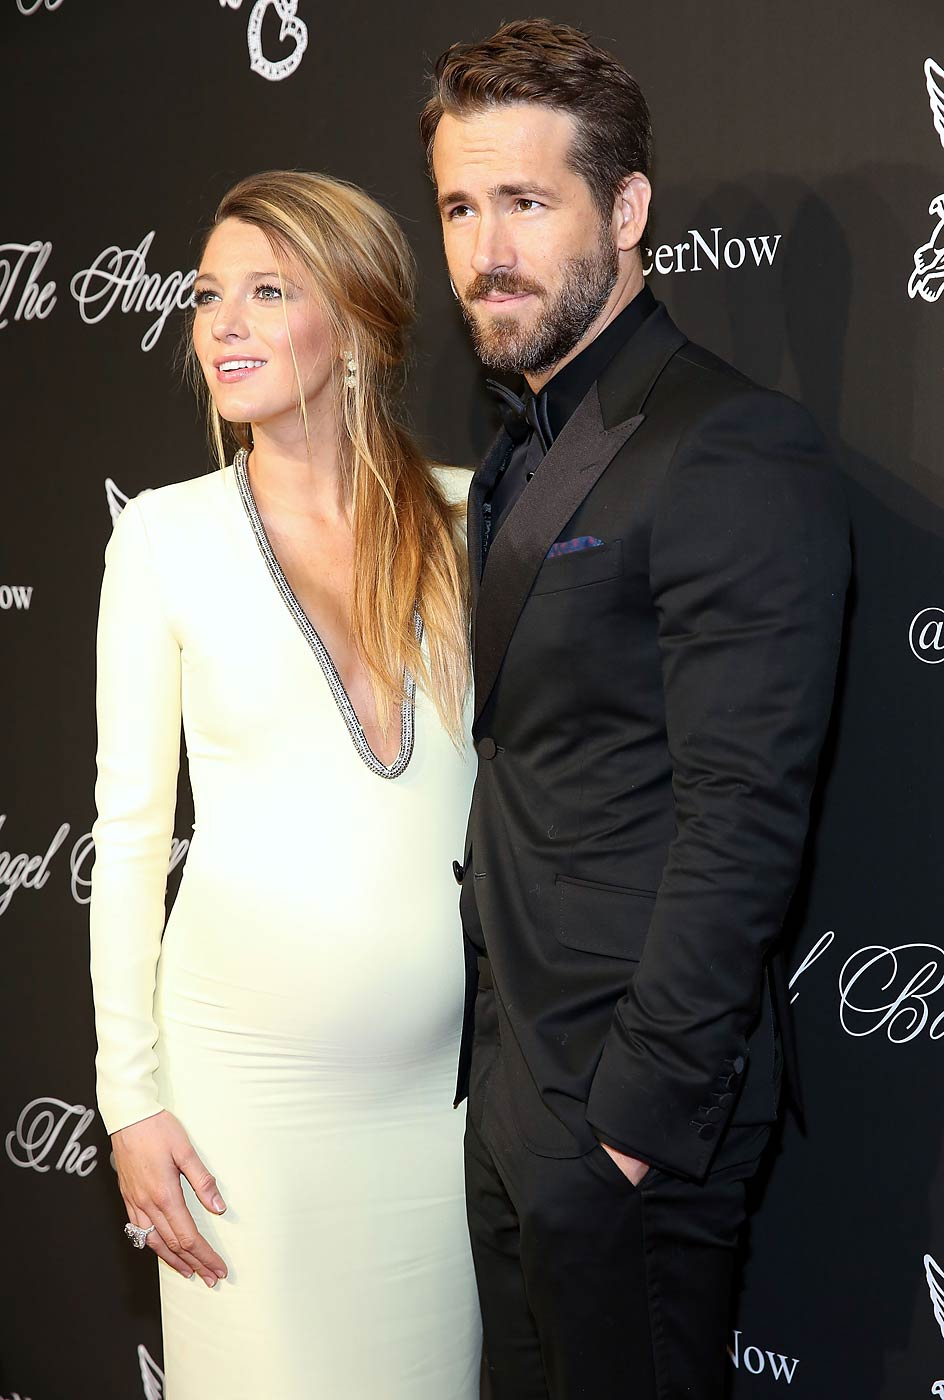 Actors Blake Lively and Ryan Reynolds attend Angel Ball 2014 at Cipriani Wall Street on October 20, 2014 in New York City.